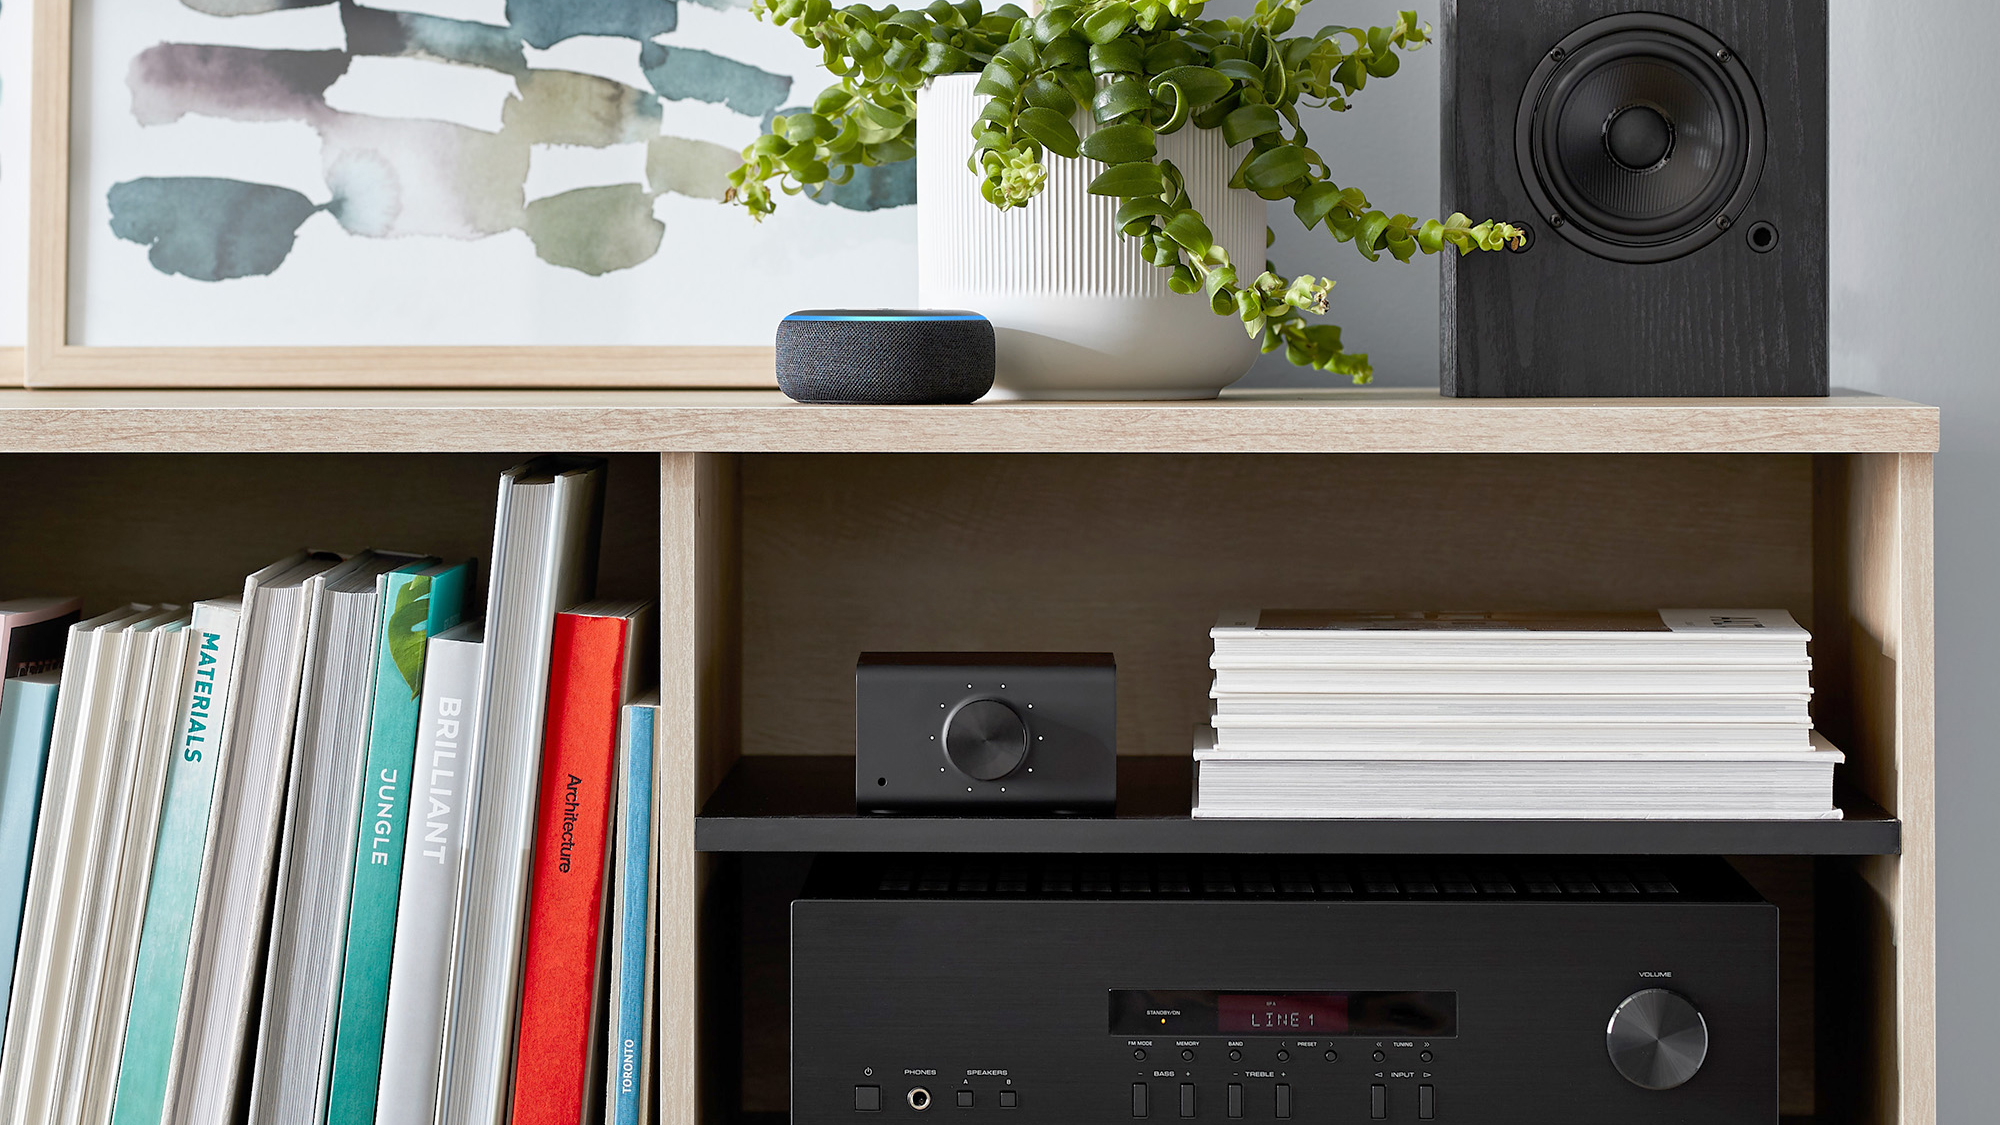 First Look: Amazon Echo Link and Amp could take over the audiophile market